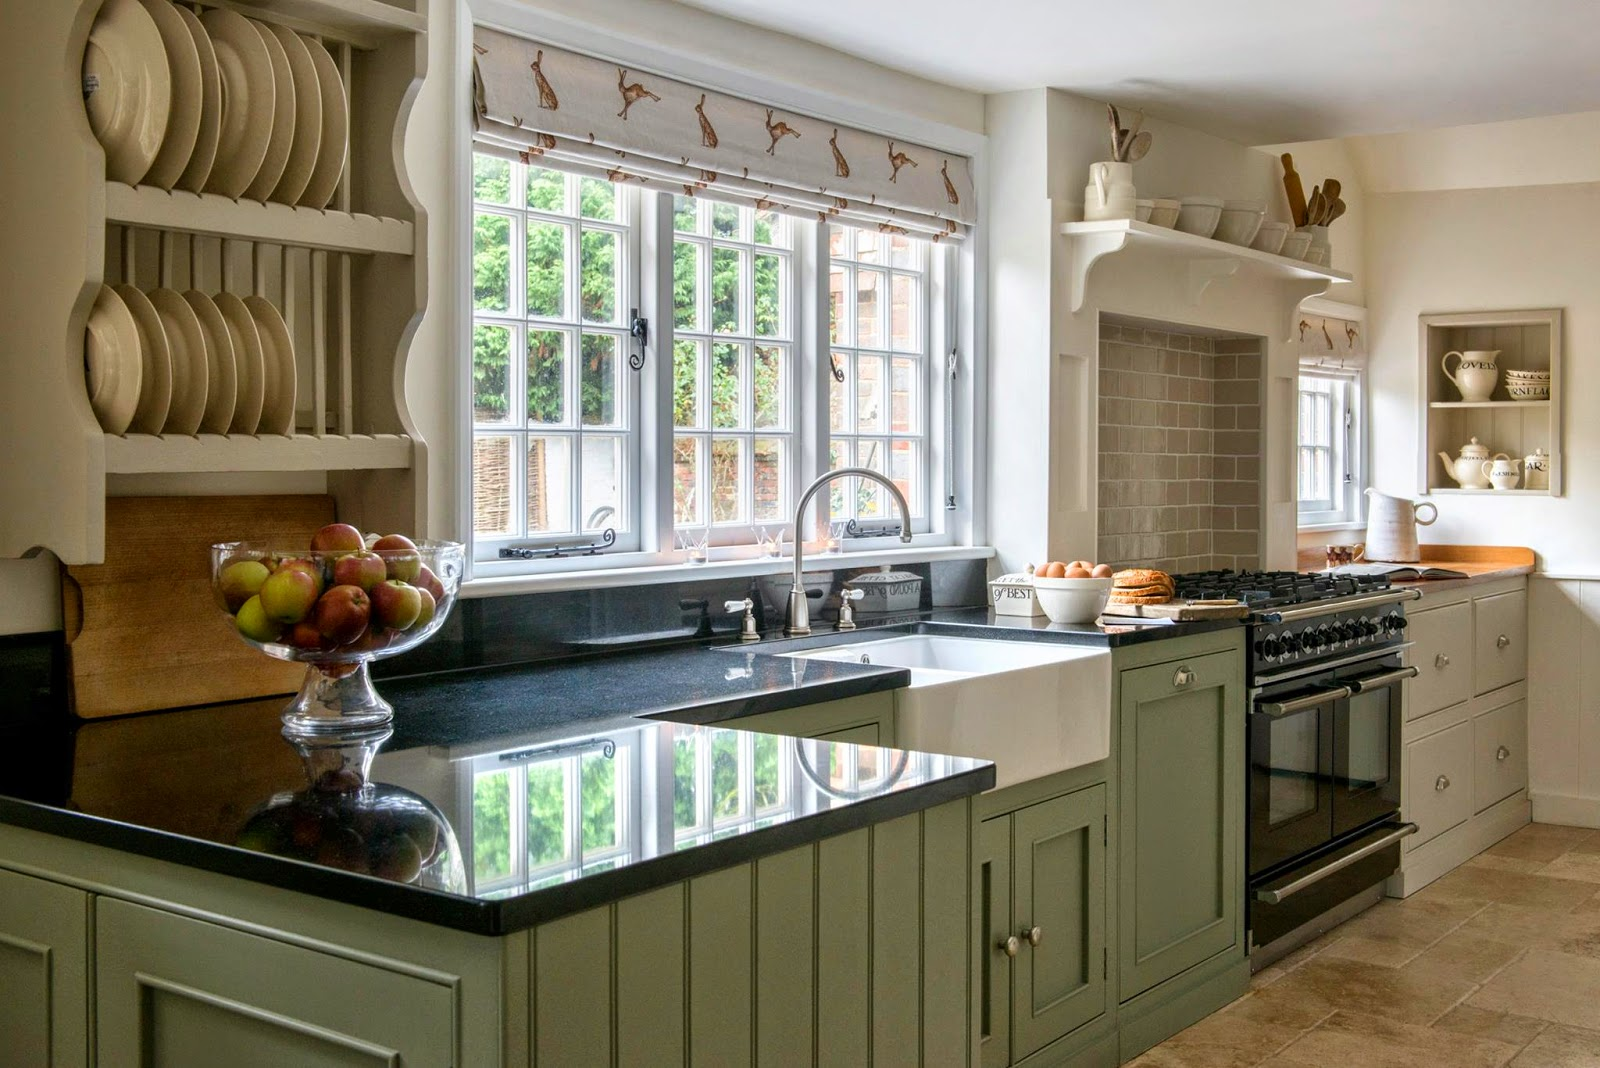 Modern Country Style Modern Country Kitchen And Colour Scheme Click Through For Details The